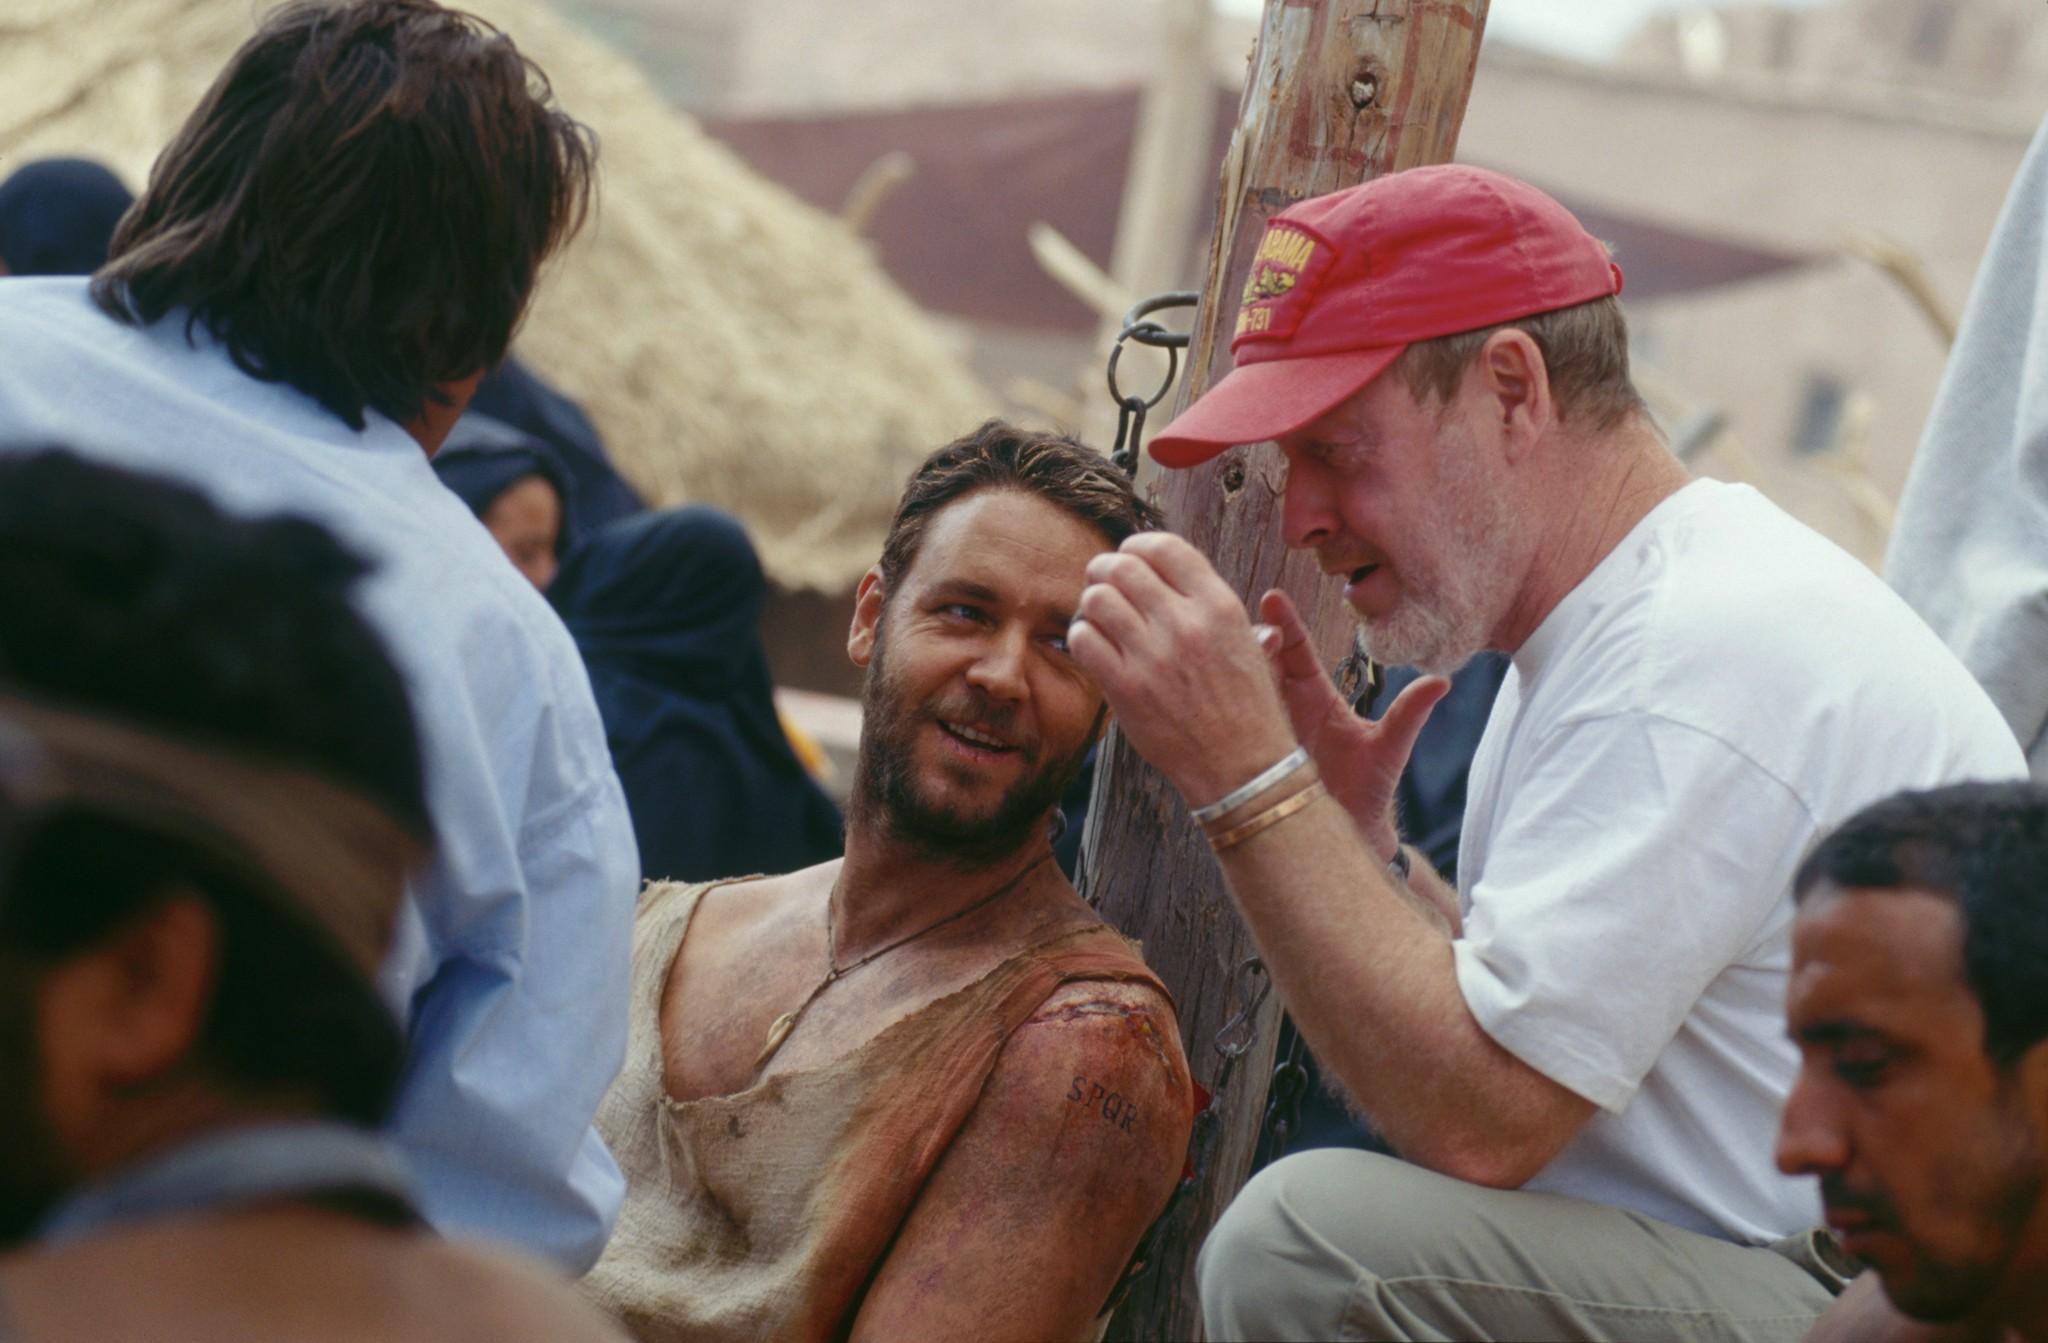 russell-crowe-and-ridley-scott-in-gladiatorul-2000--large-picture